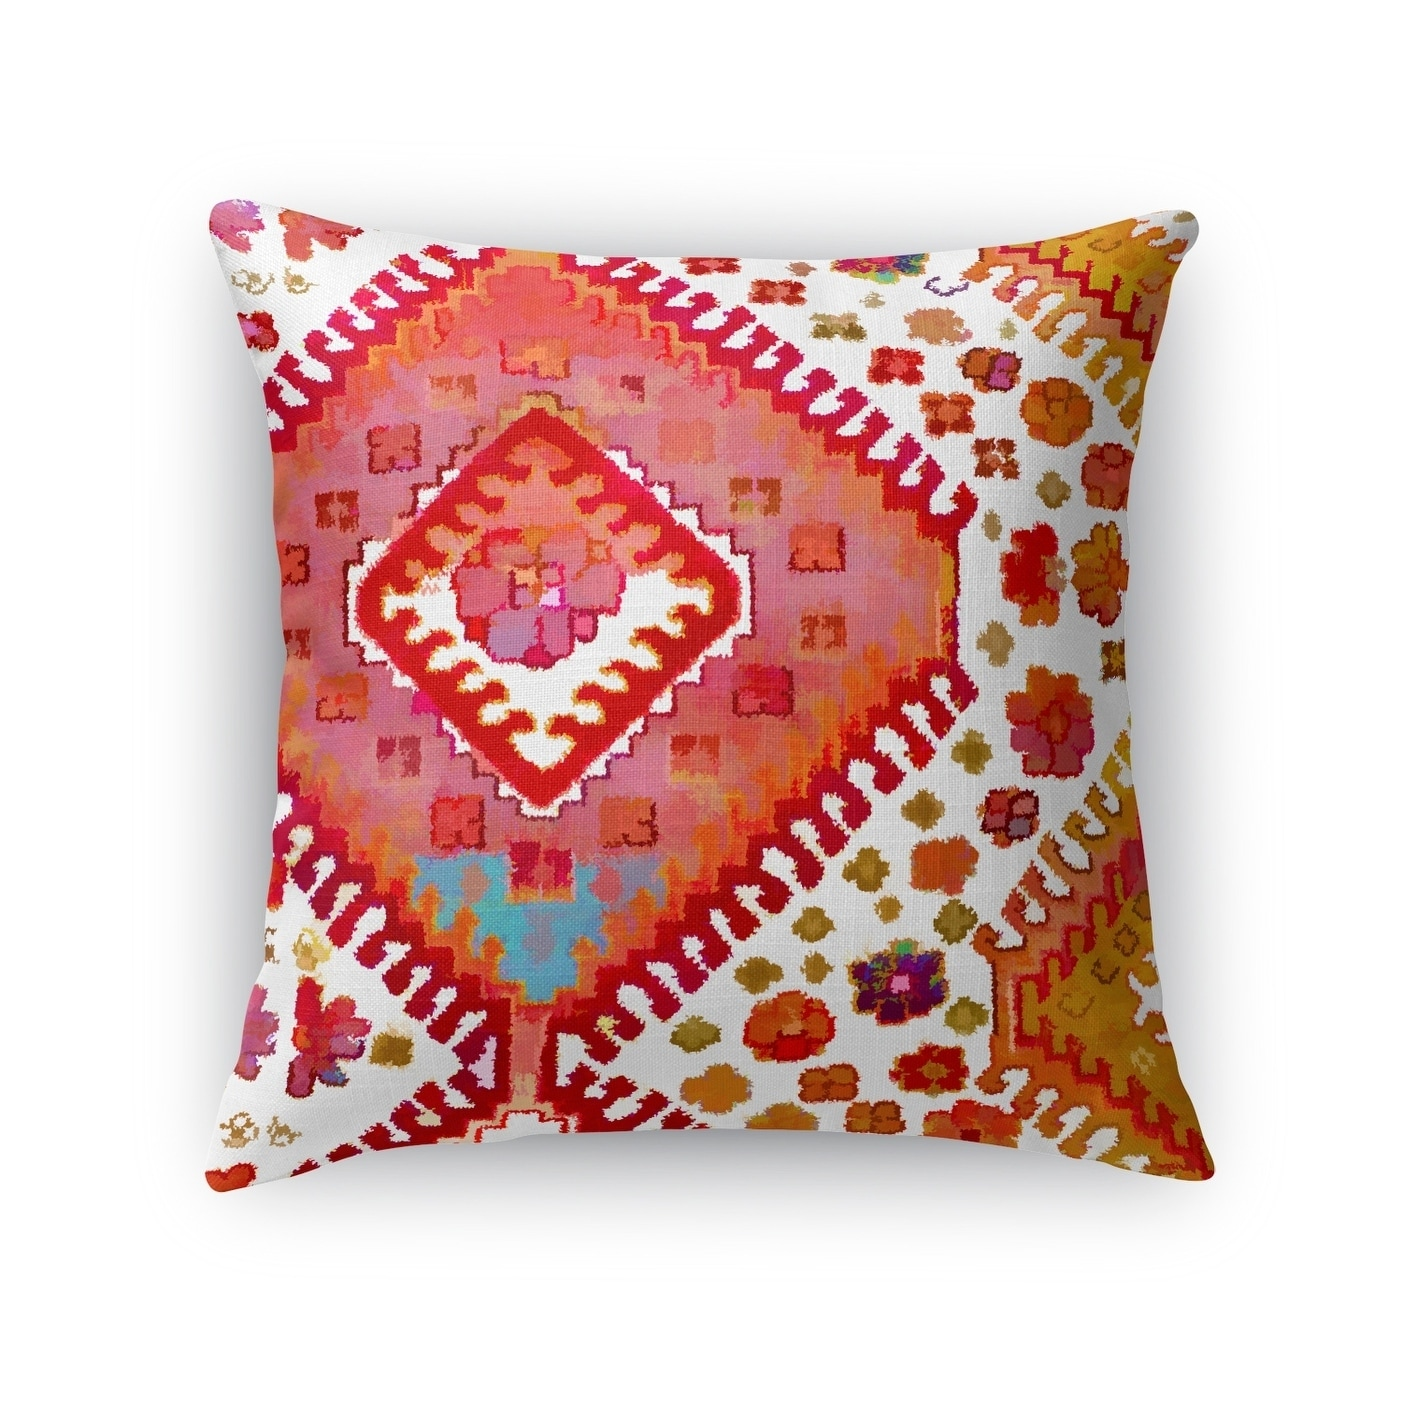 Kavka Designs pink/ blue/ orange arrow accent pillow by terri ellis with insert (18 x 18)